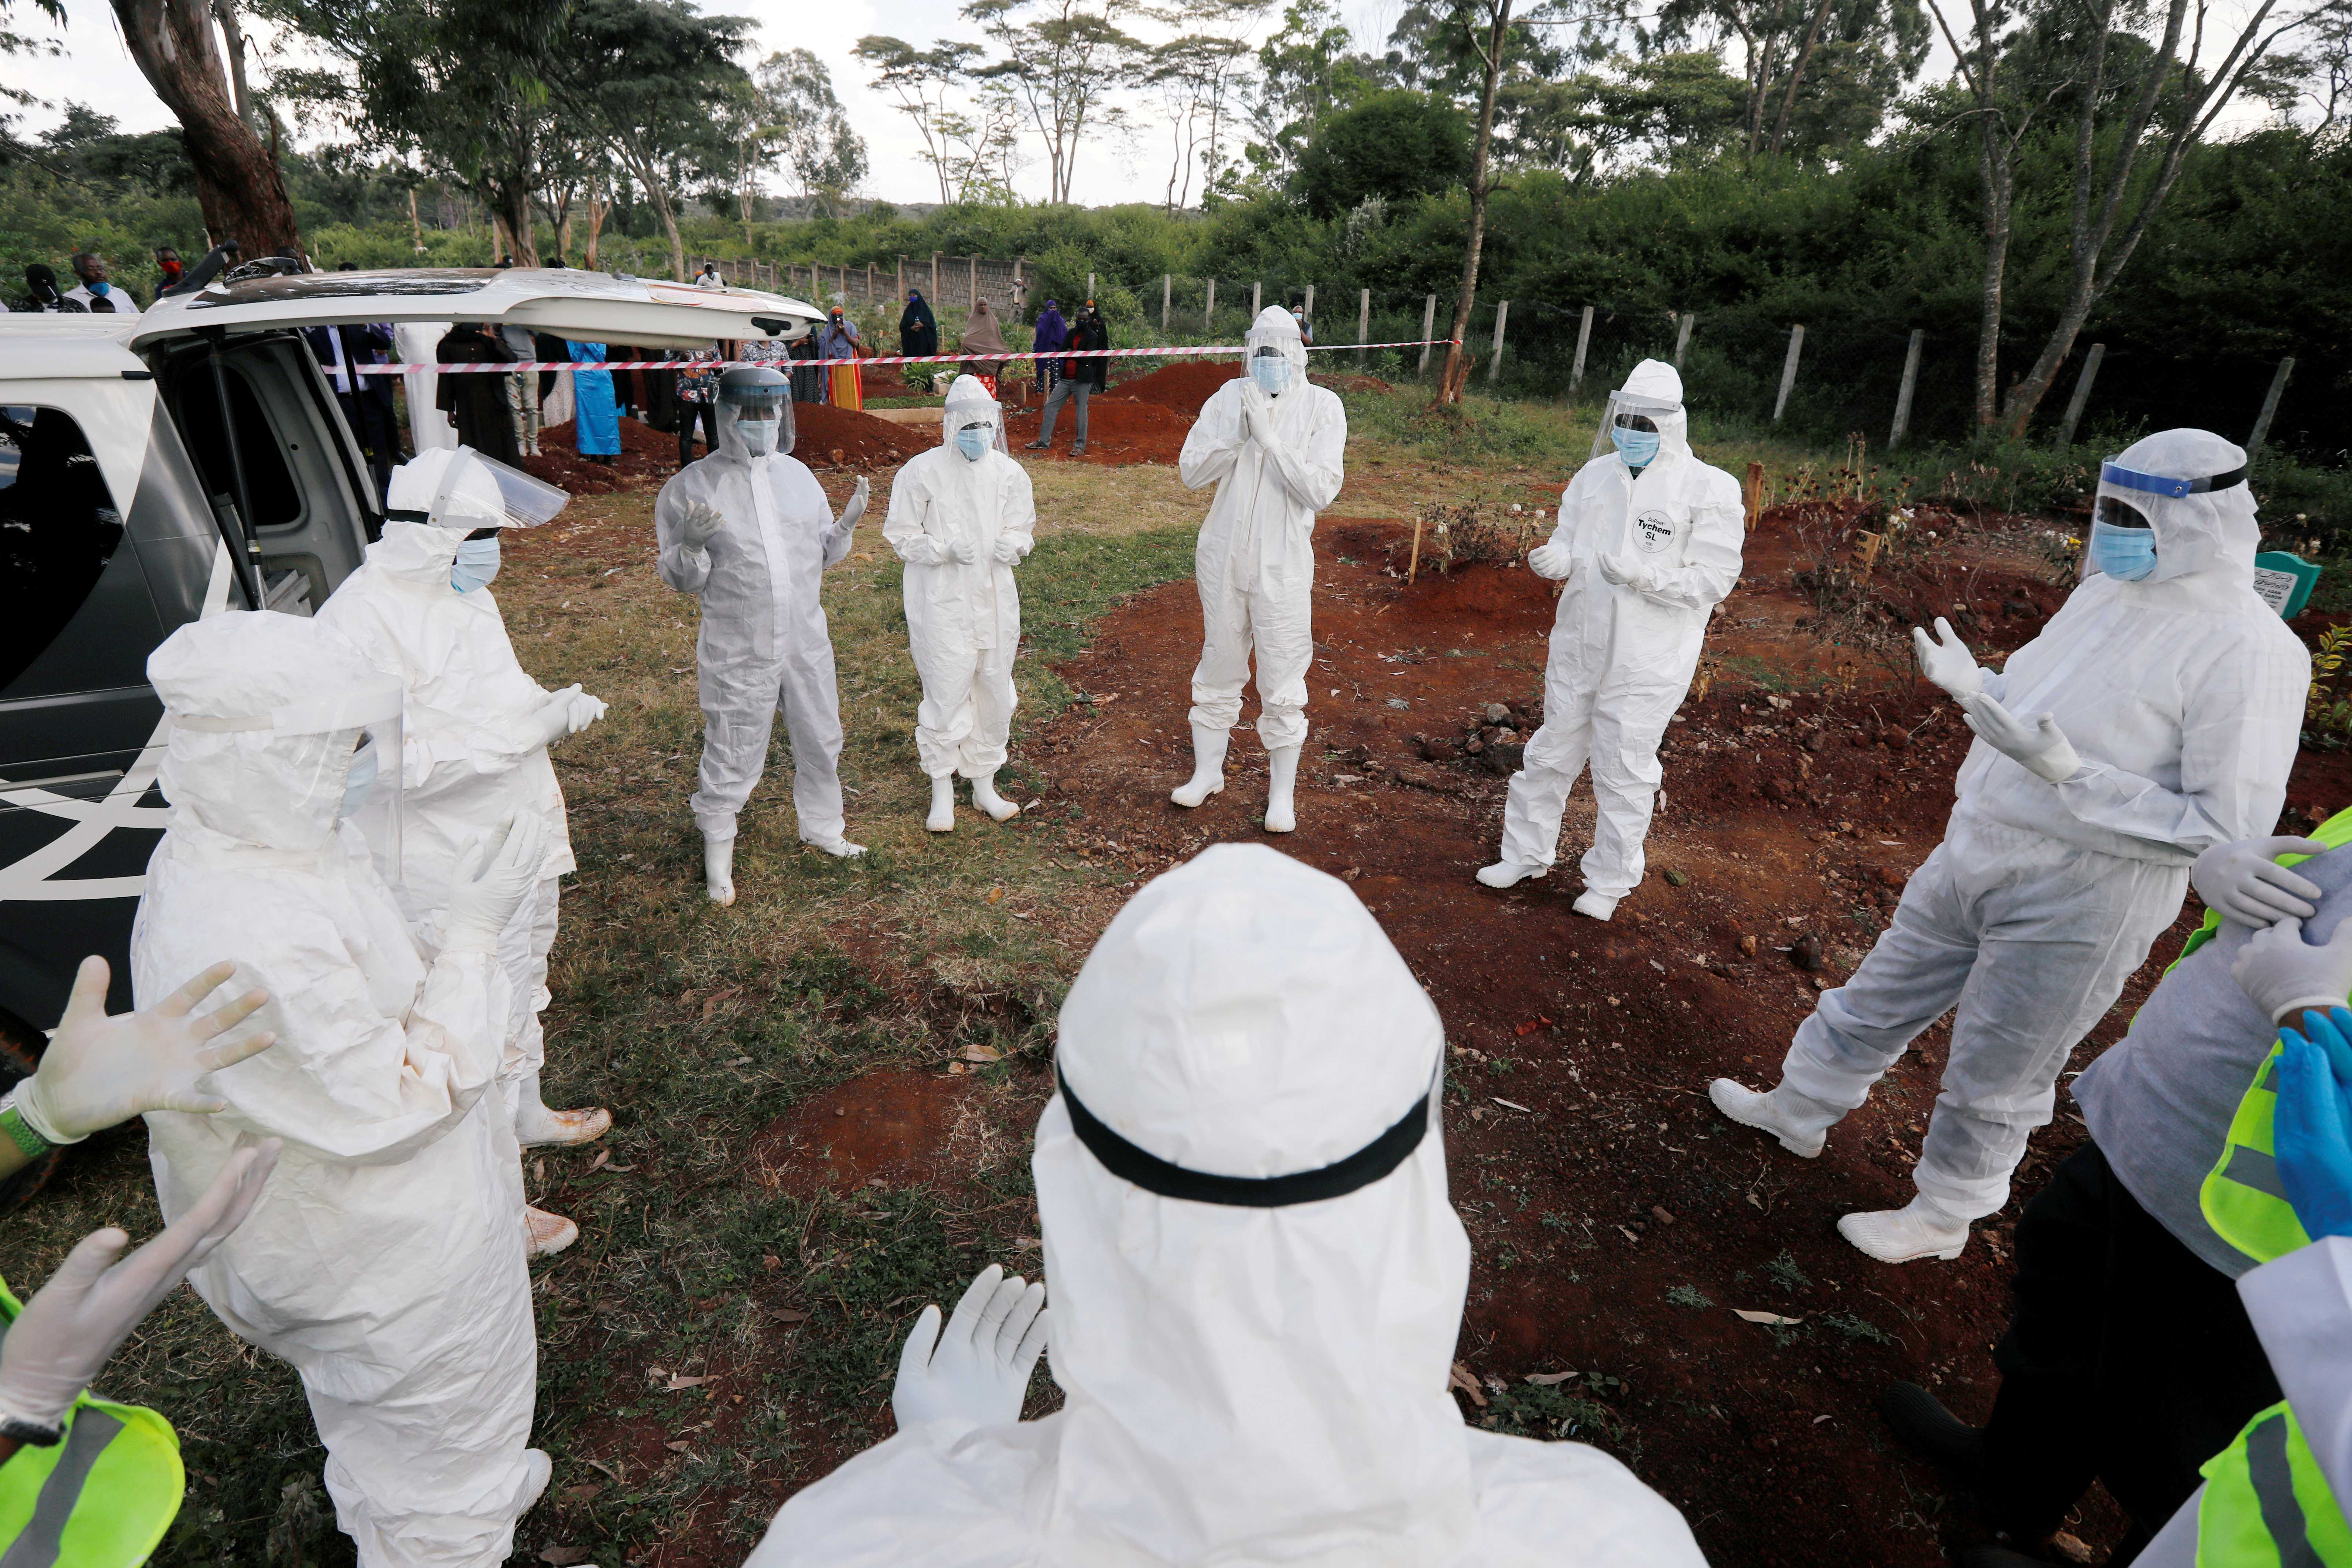 Volunteers from the National Muslim COVID-19 Response Committee, wearing Personal Protective Equipment (PPE), pray before the burial of Abdullahi Adan, 52, who died due to the coronavirus disease (COVID-19), at the separated section of the muslim cemetery in Nairobi, Kenya August 6, 2020.